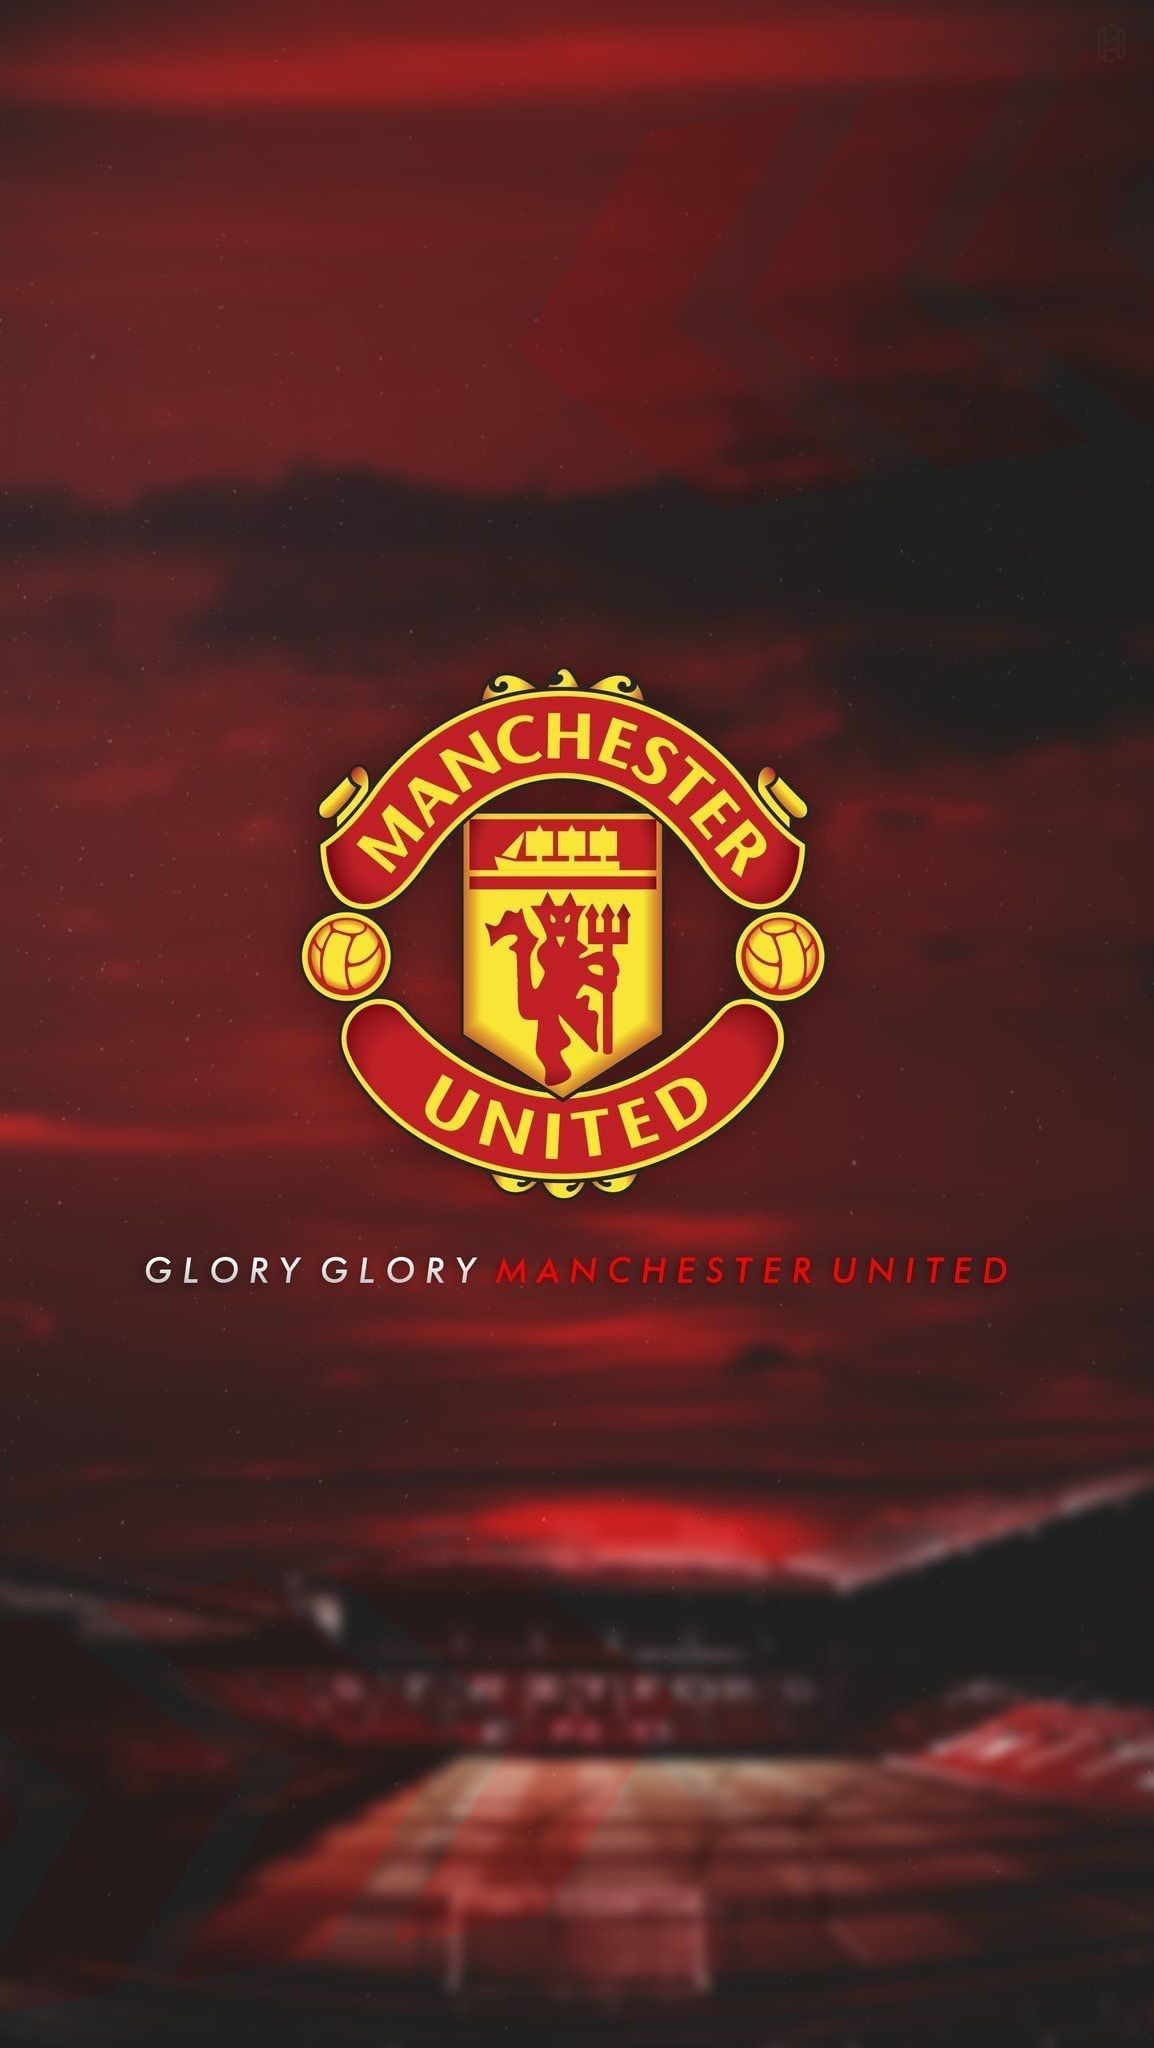 71 Man Utd Wallpapers On Wallpaperplay In 2020 Manchester United Wallpaper Manchester United Wallpapers Iphone Manchester United Logo